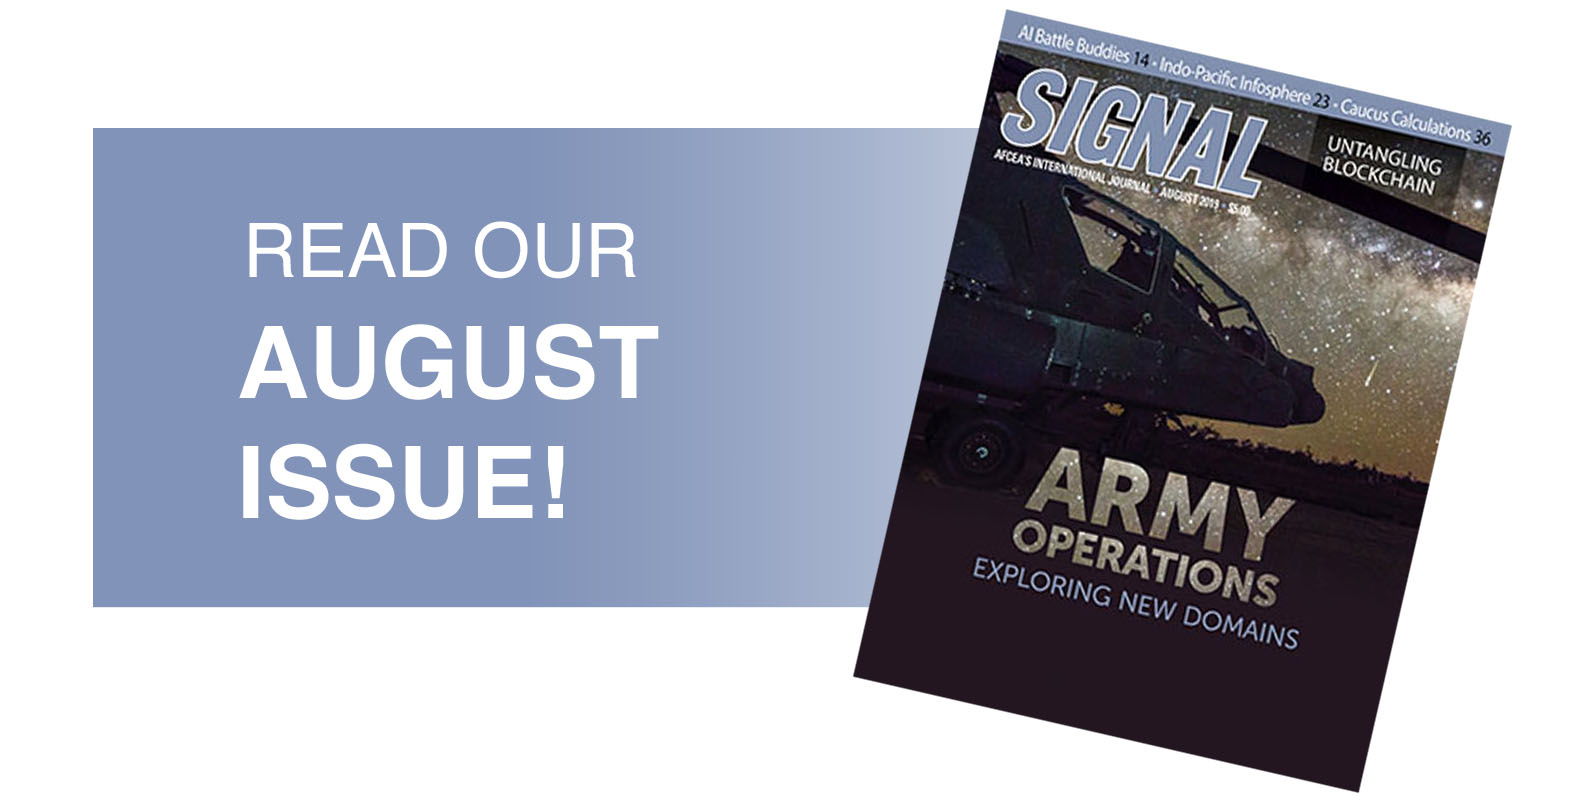 SIGNAL August Issue